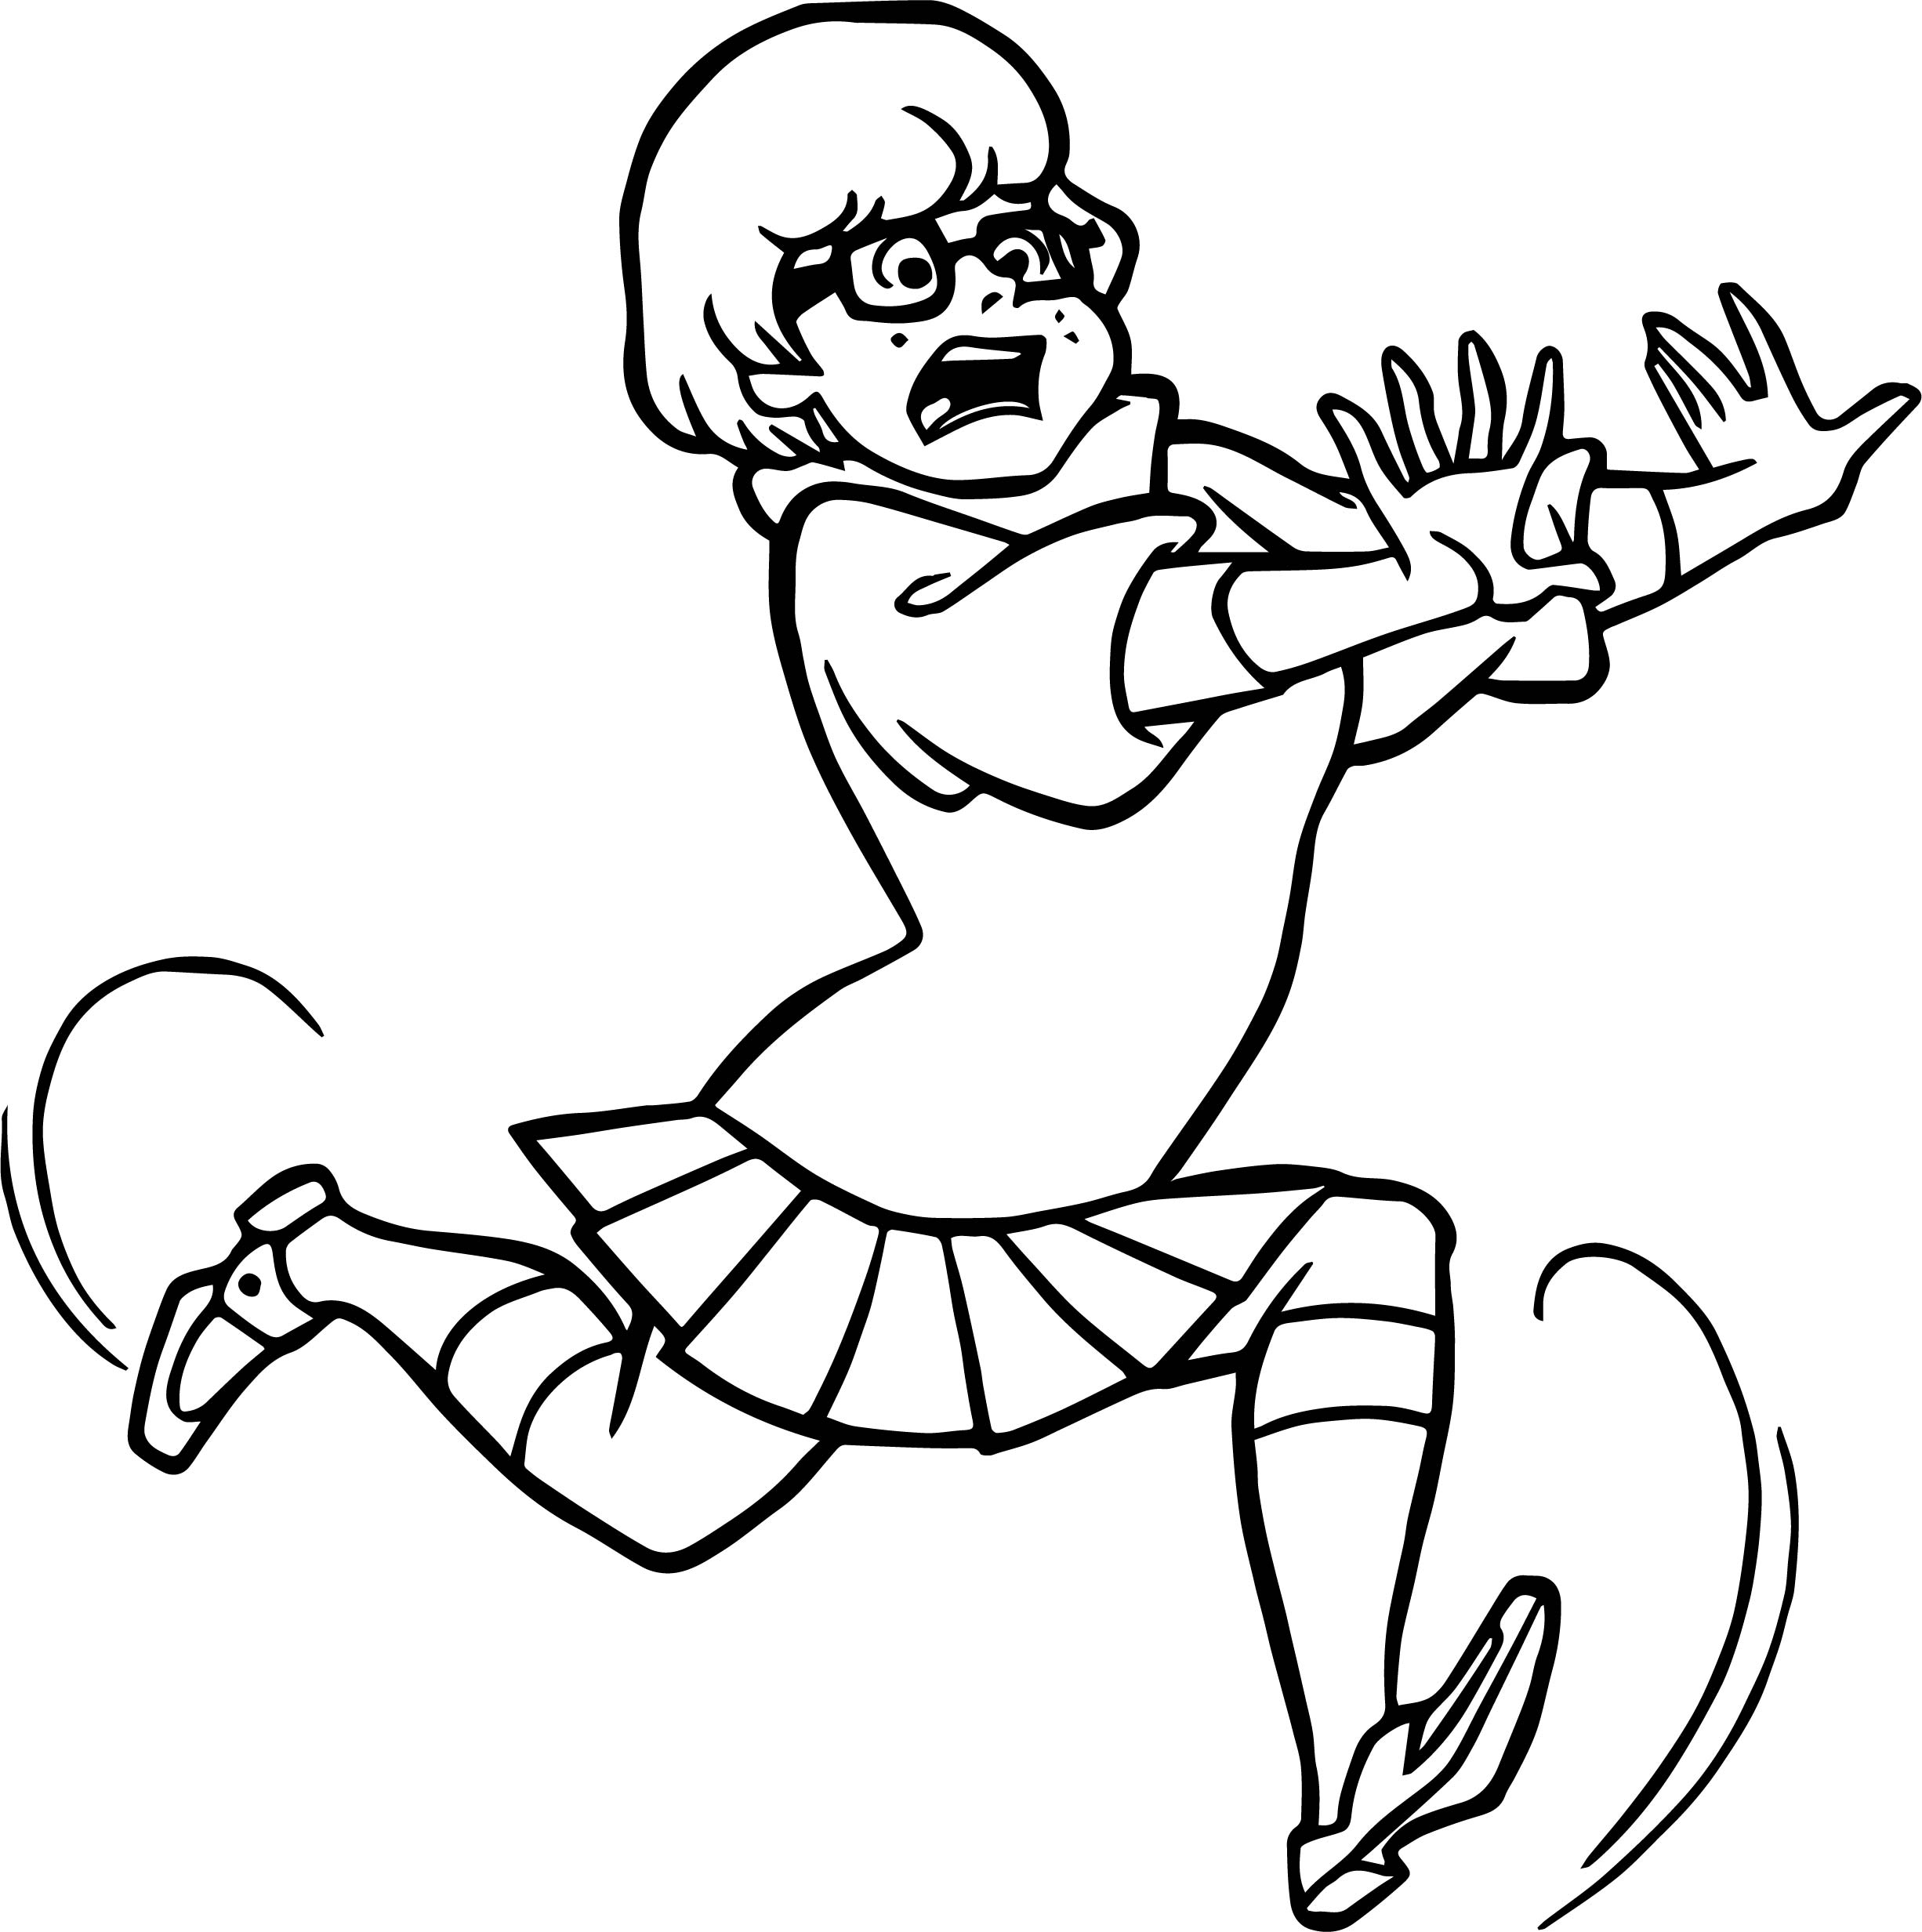 Adult Coloring Page Runner